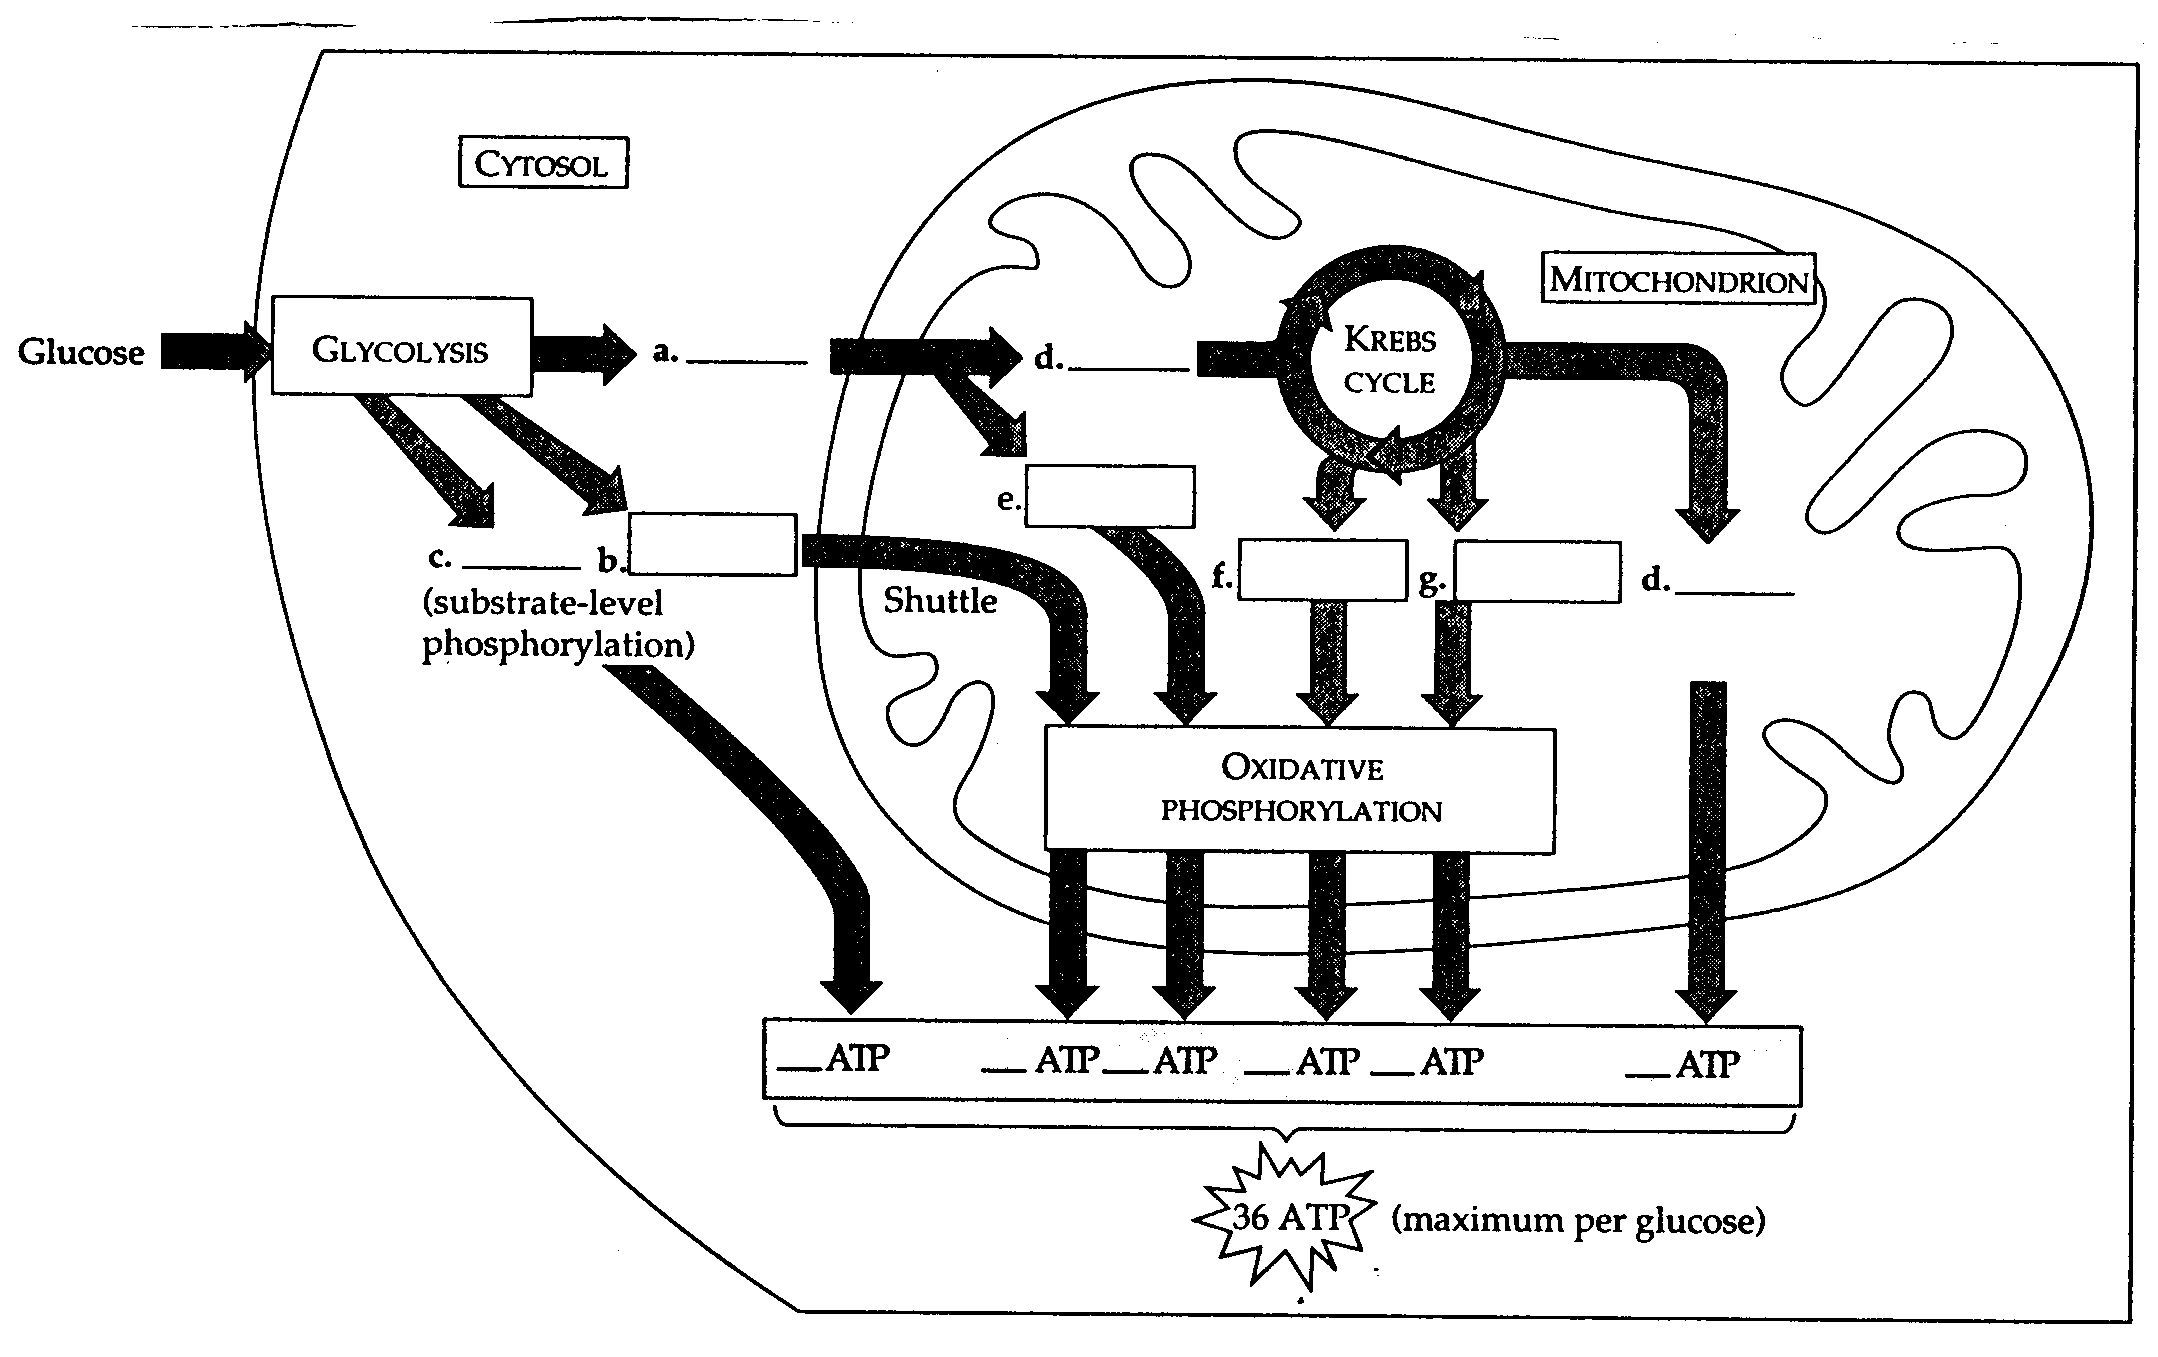 Worksheets Cellular Respiration Diagram Worksheet metabolism workshop and worksheets on pinterest